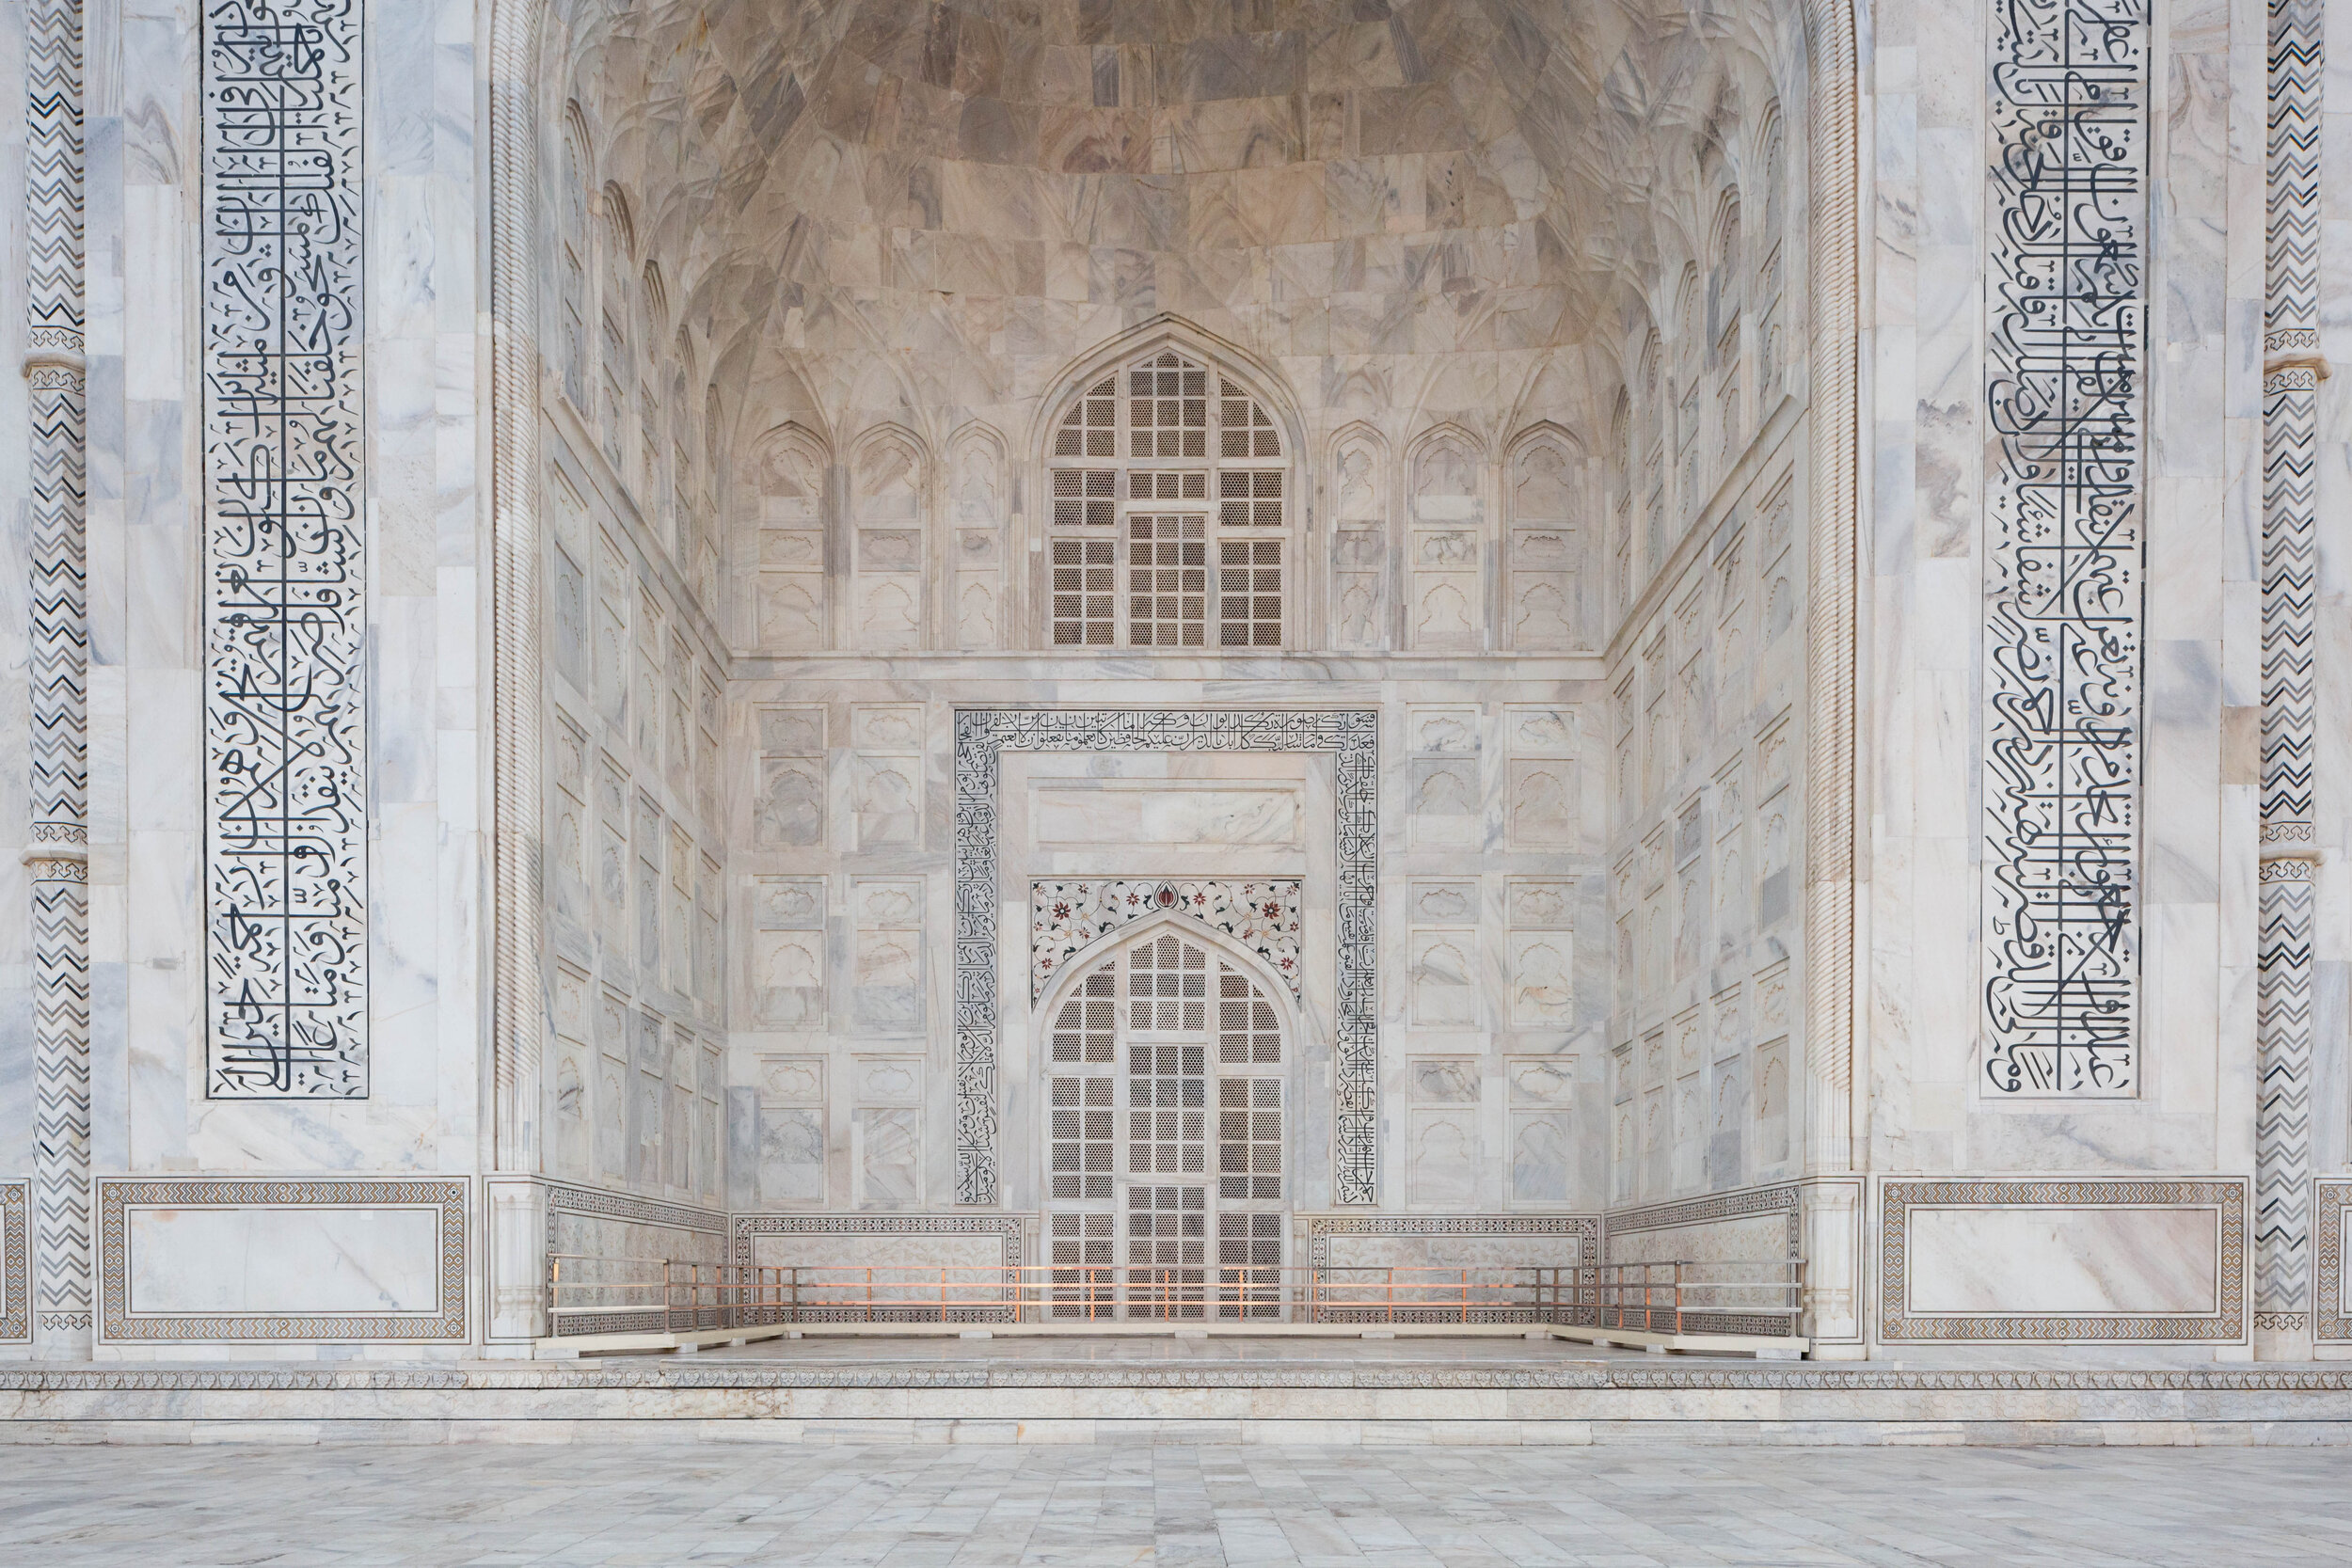 Taj Mahal 190210 268, image by Andrew Campbell Nelson.jpg